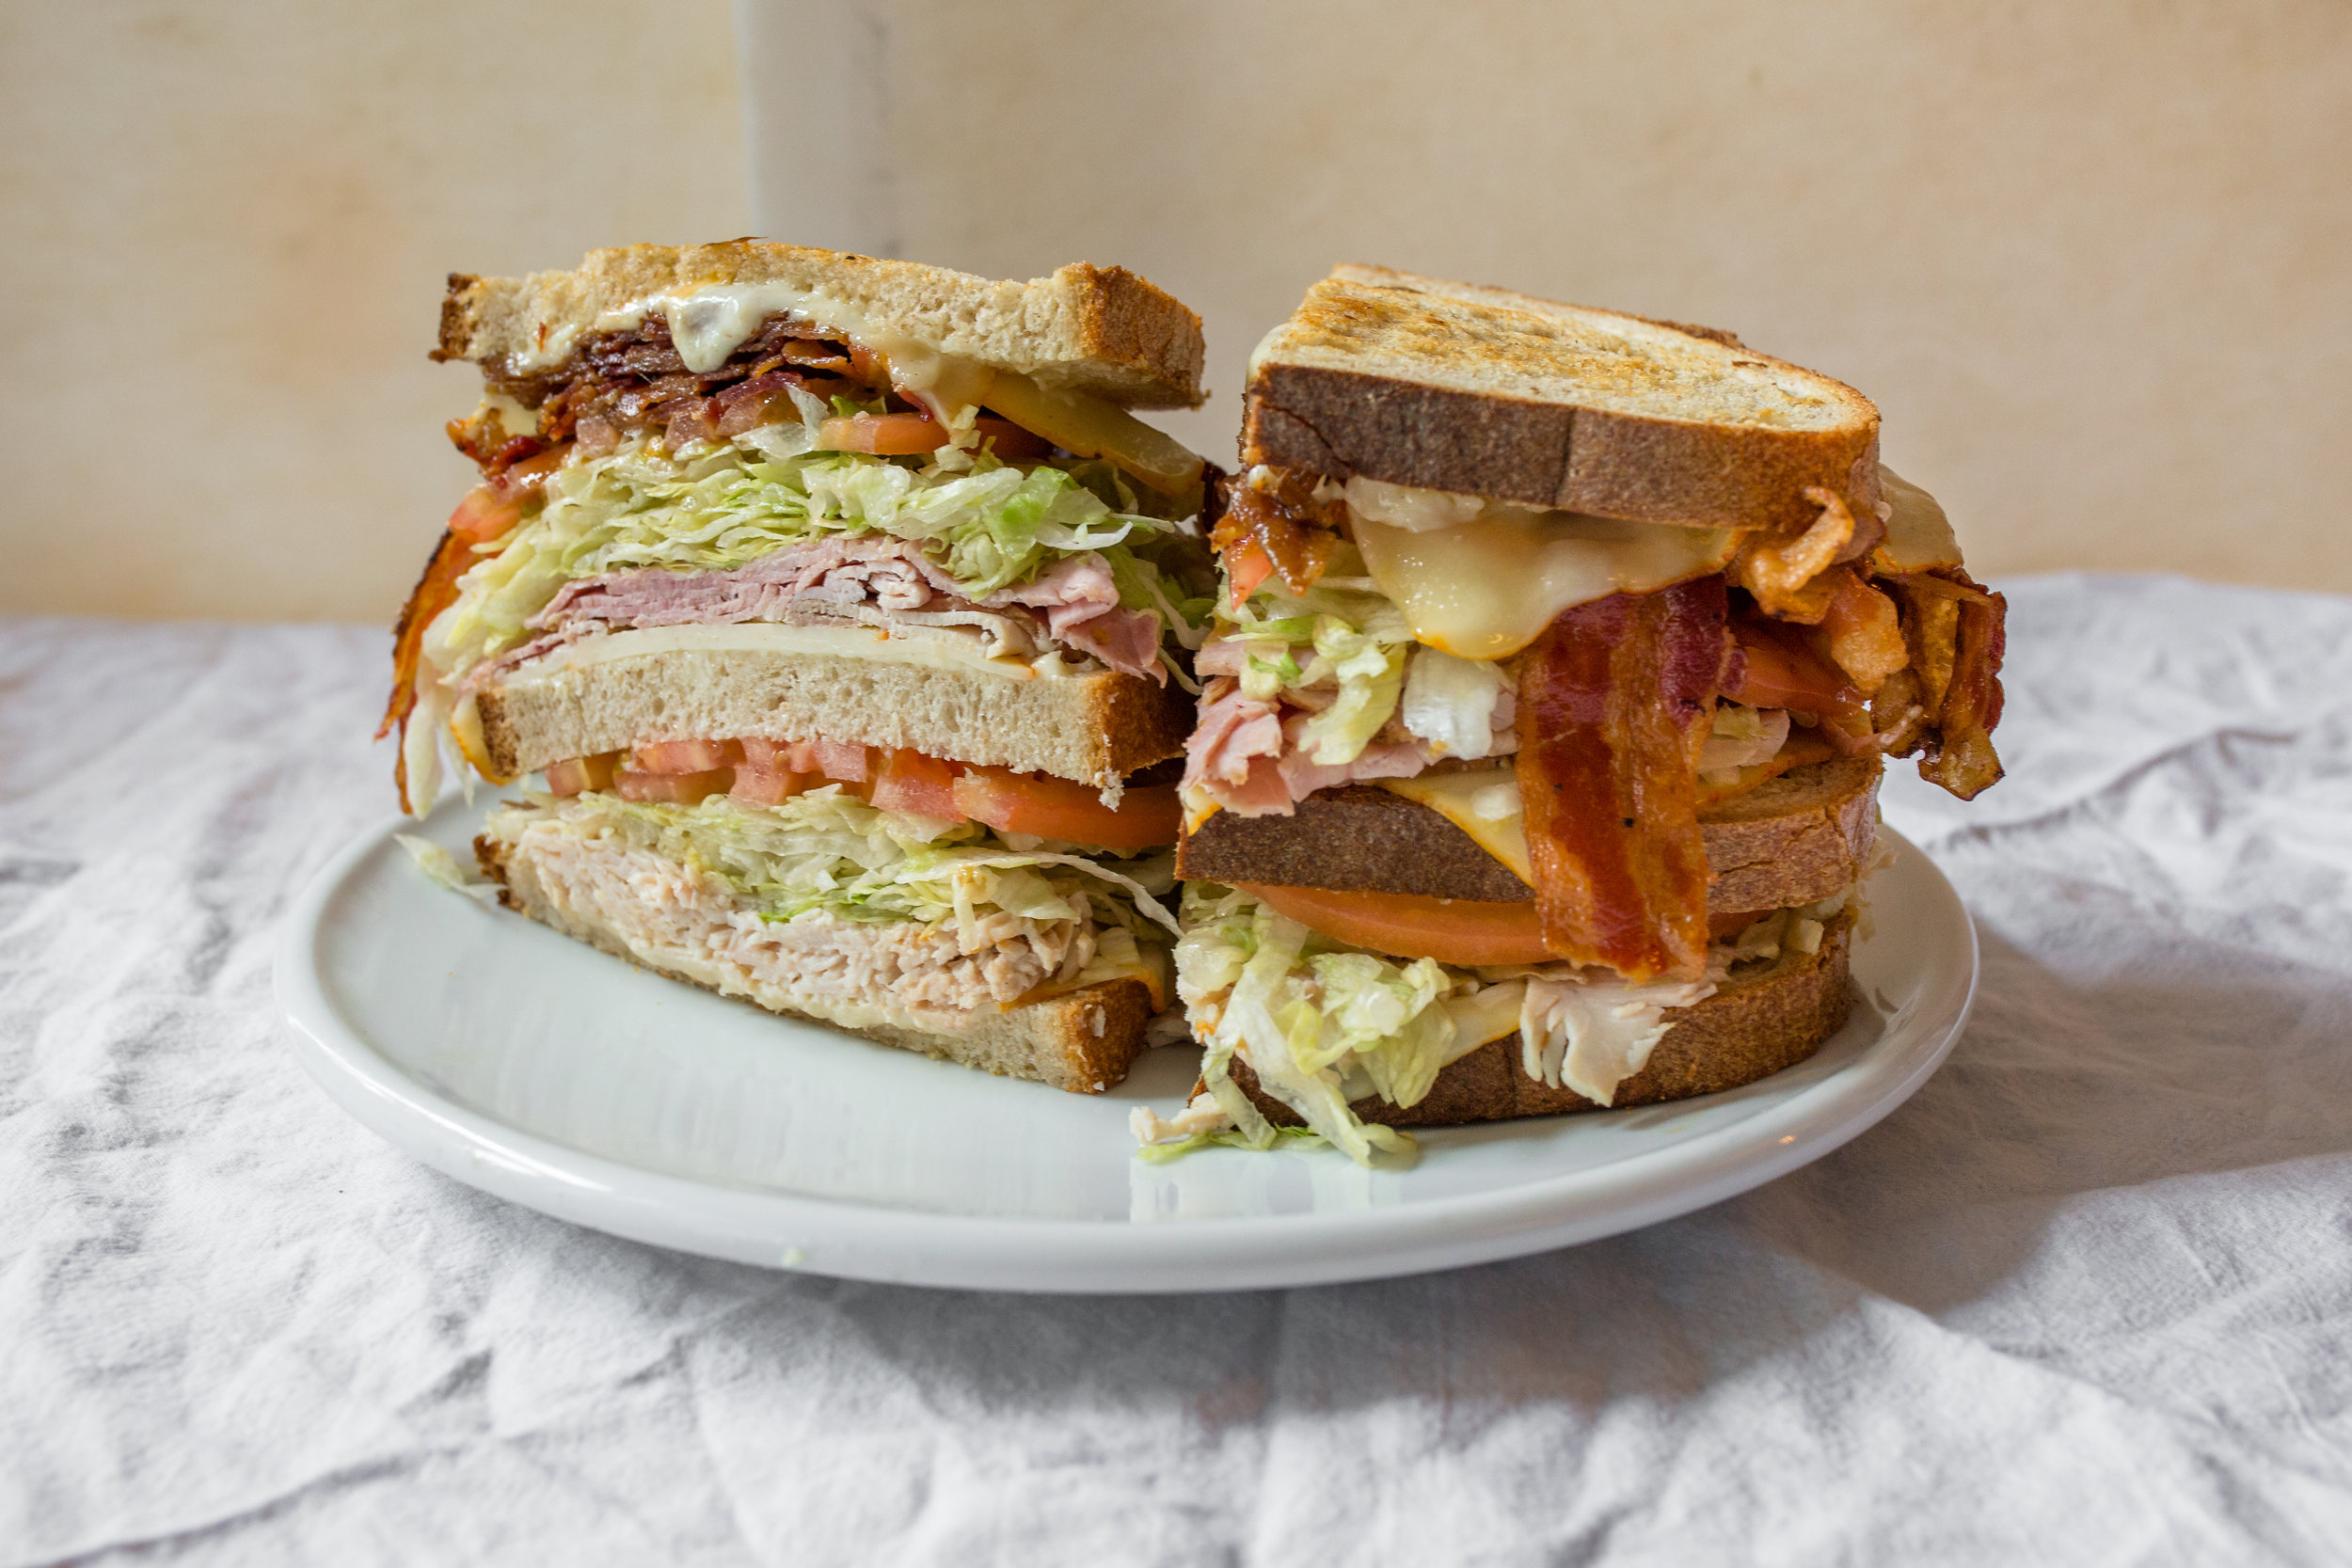 Portland's best sandwiches, made from scratch.